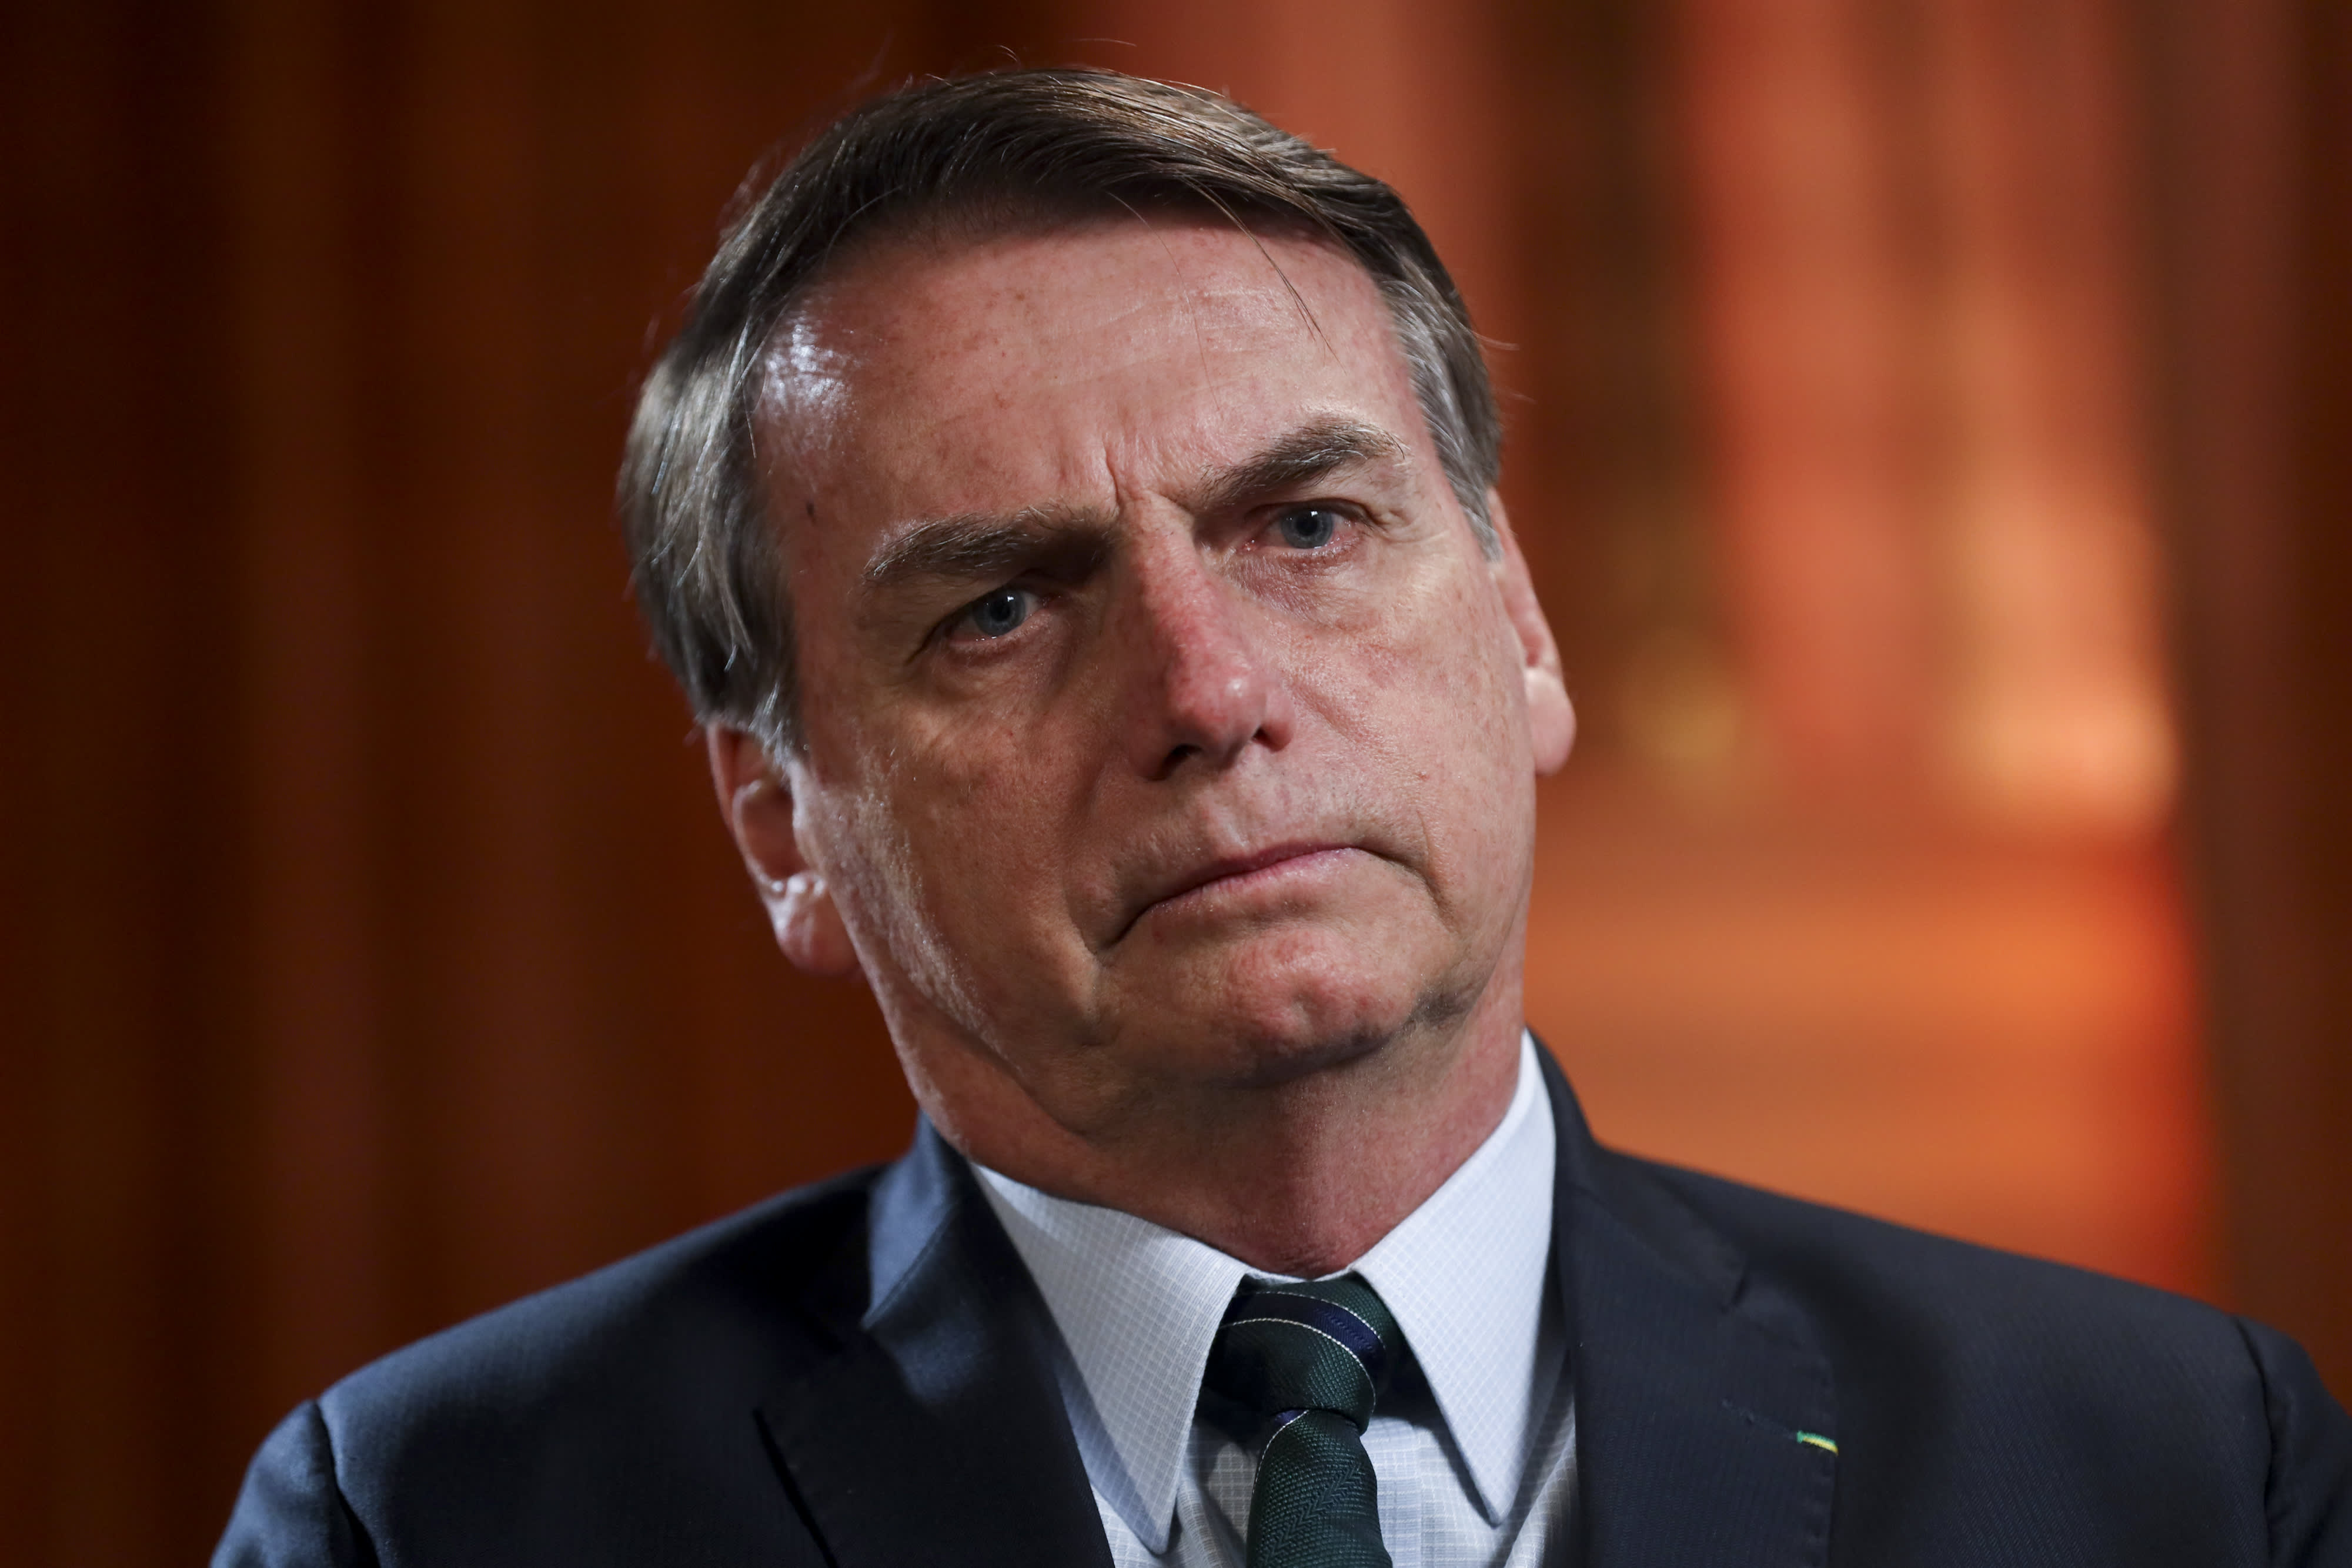 Brazil's Bolsonaro accuses French president of 'colonialist mindset' after calls for action on Amazon fires